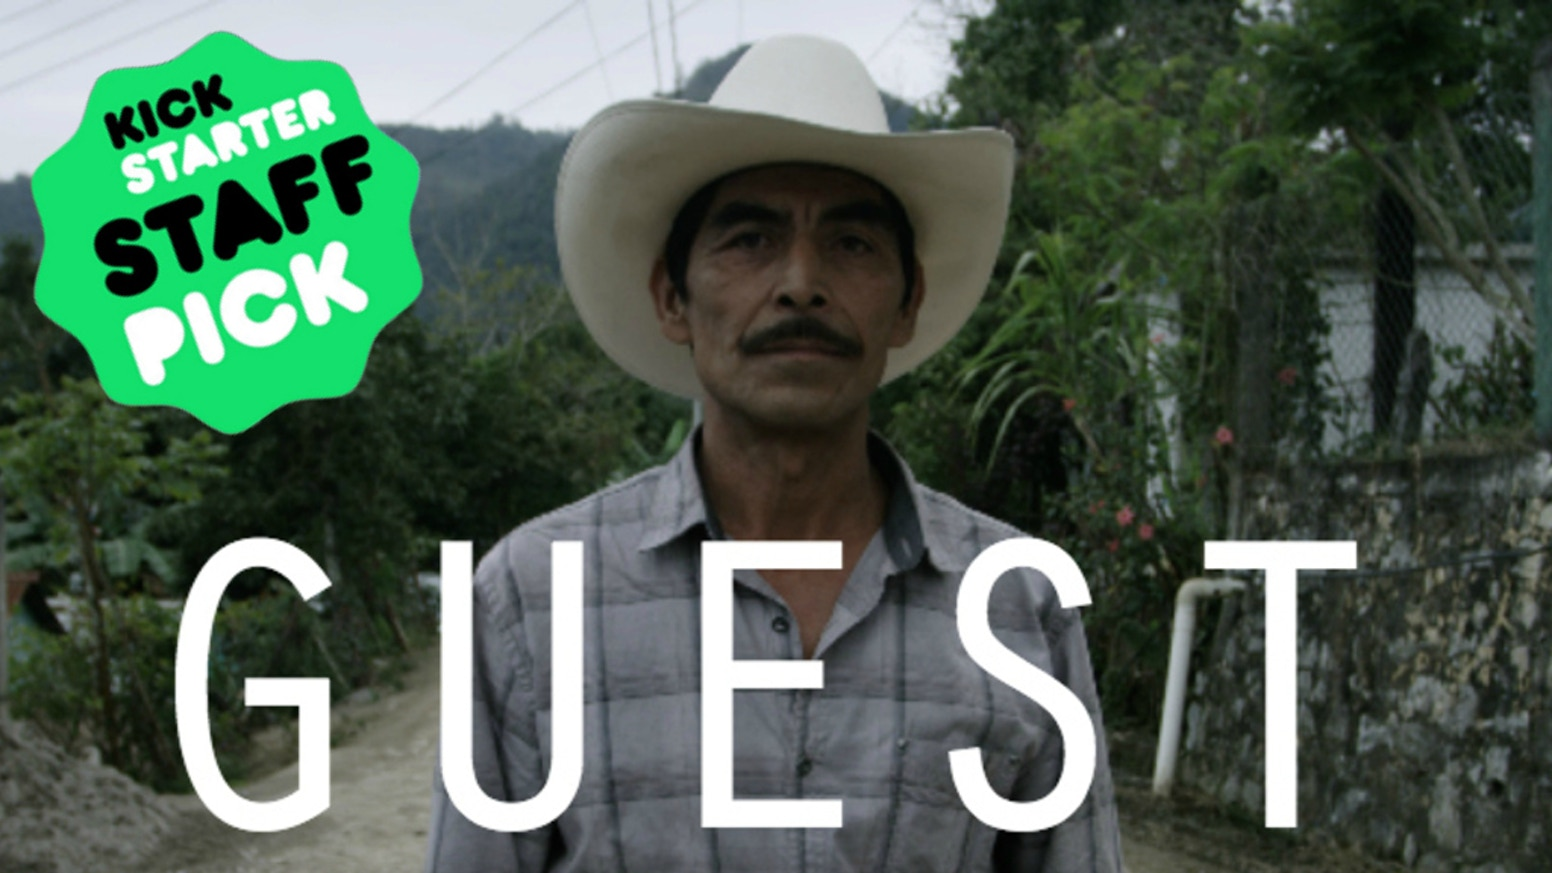 Guest is a new film that explores the U.S Guestworker program.